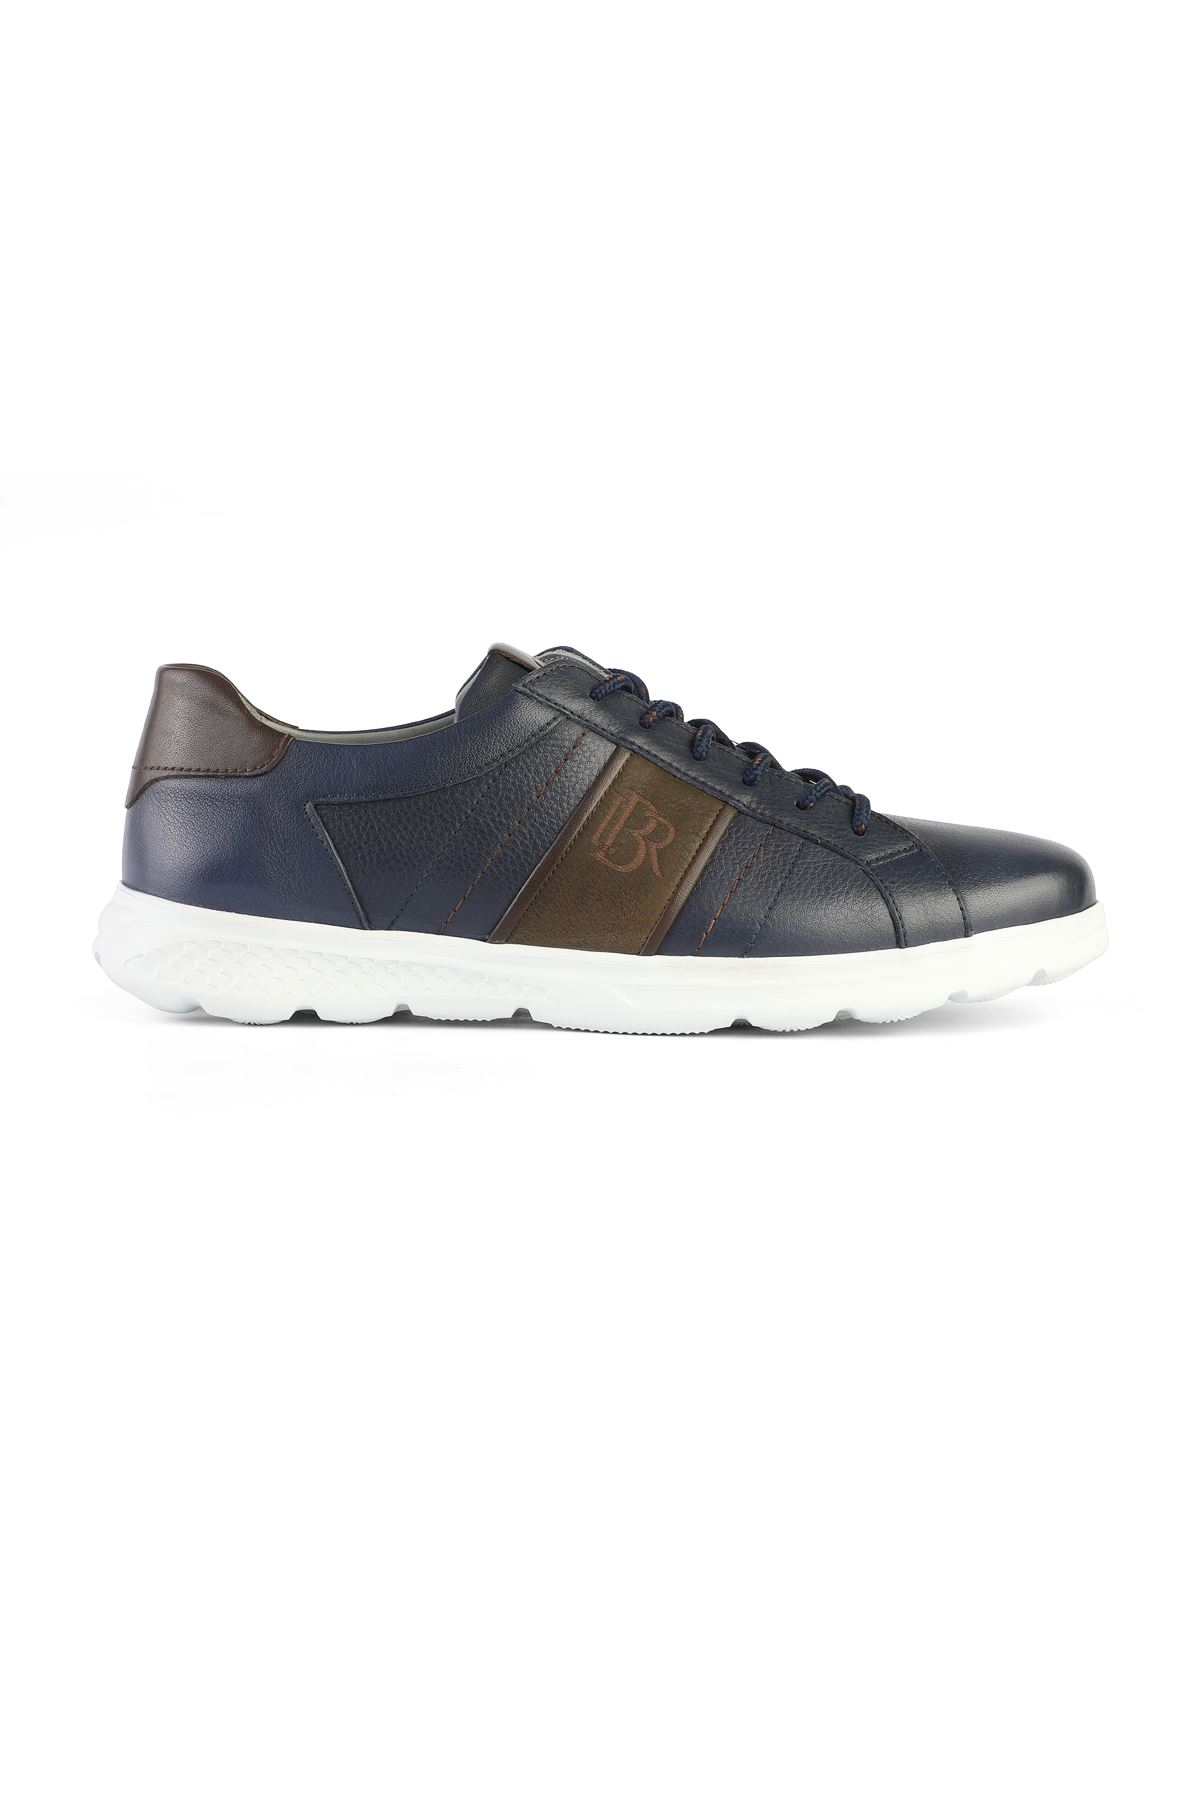 3224 Navy Sports Shoes